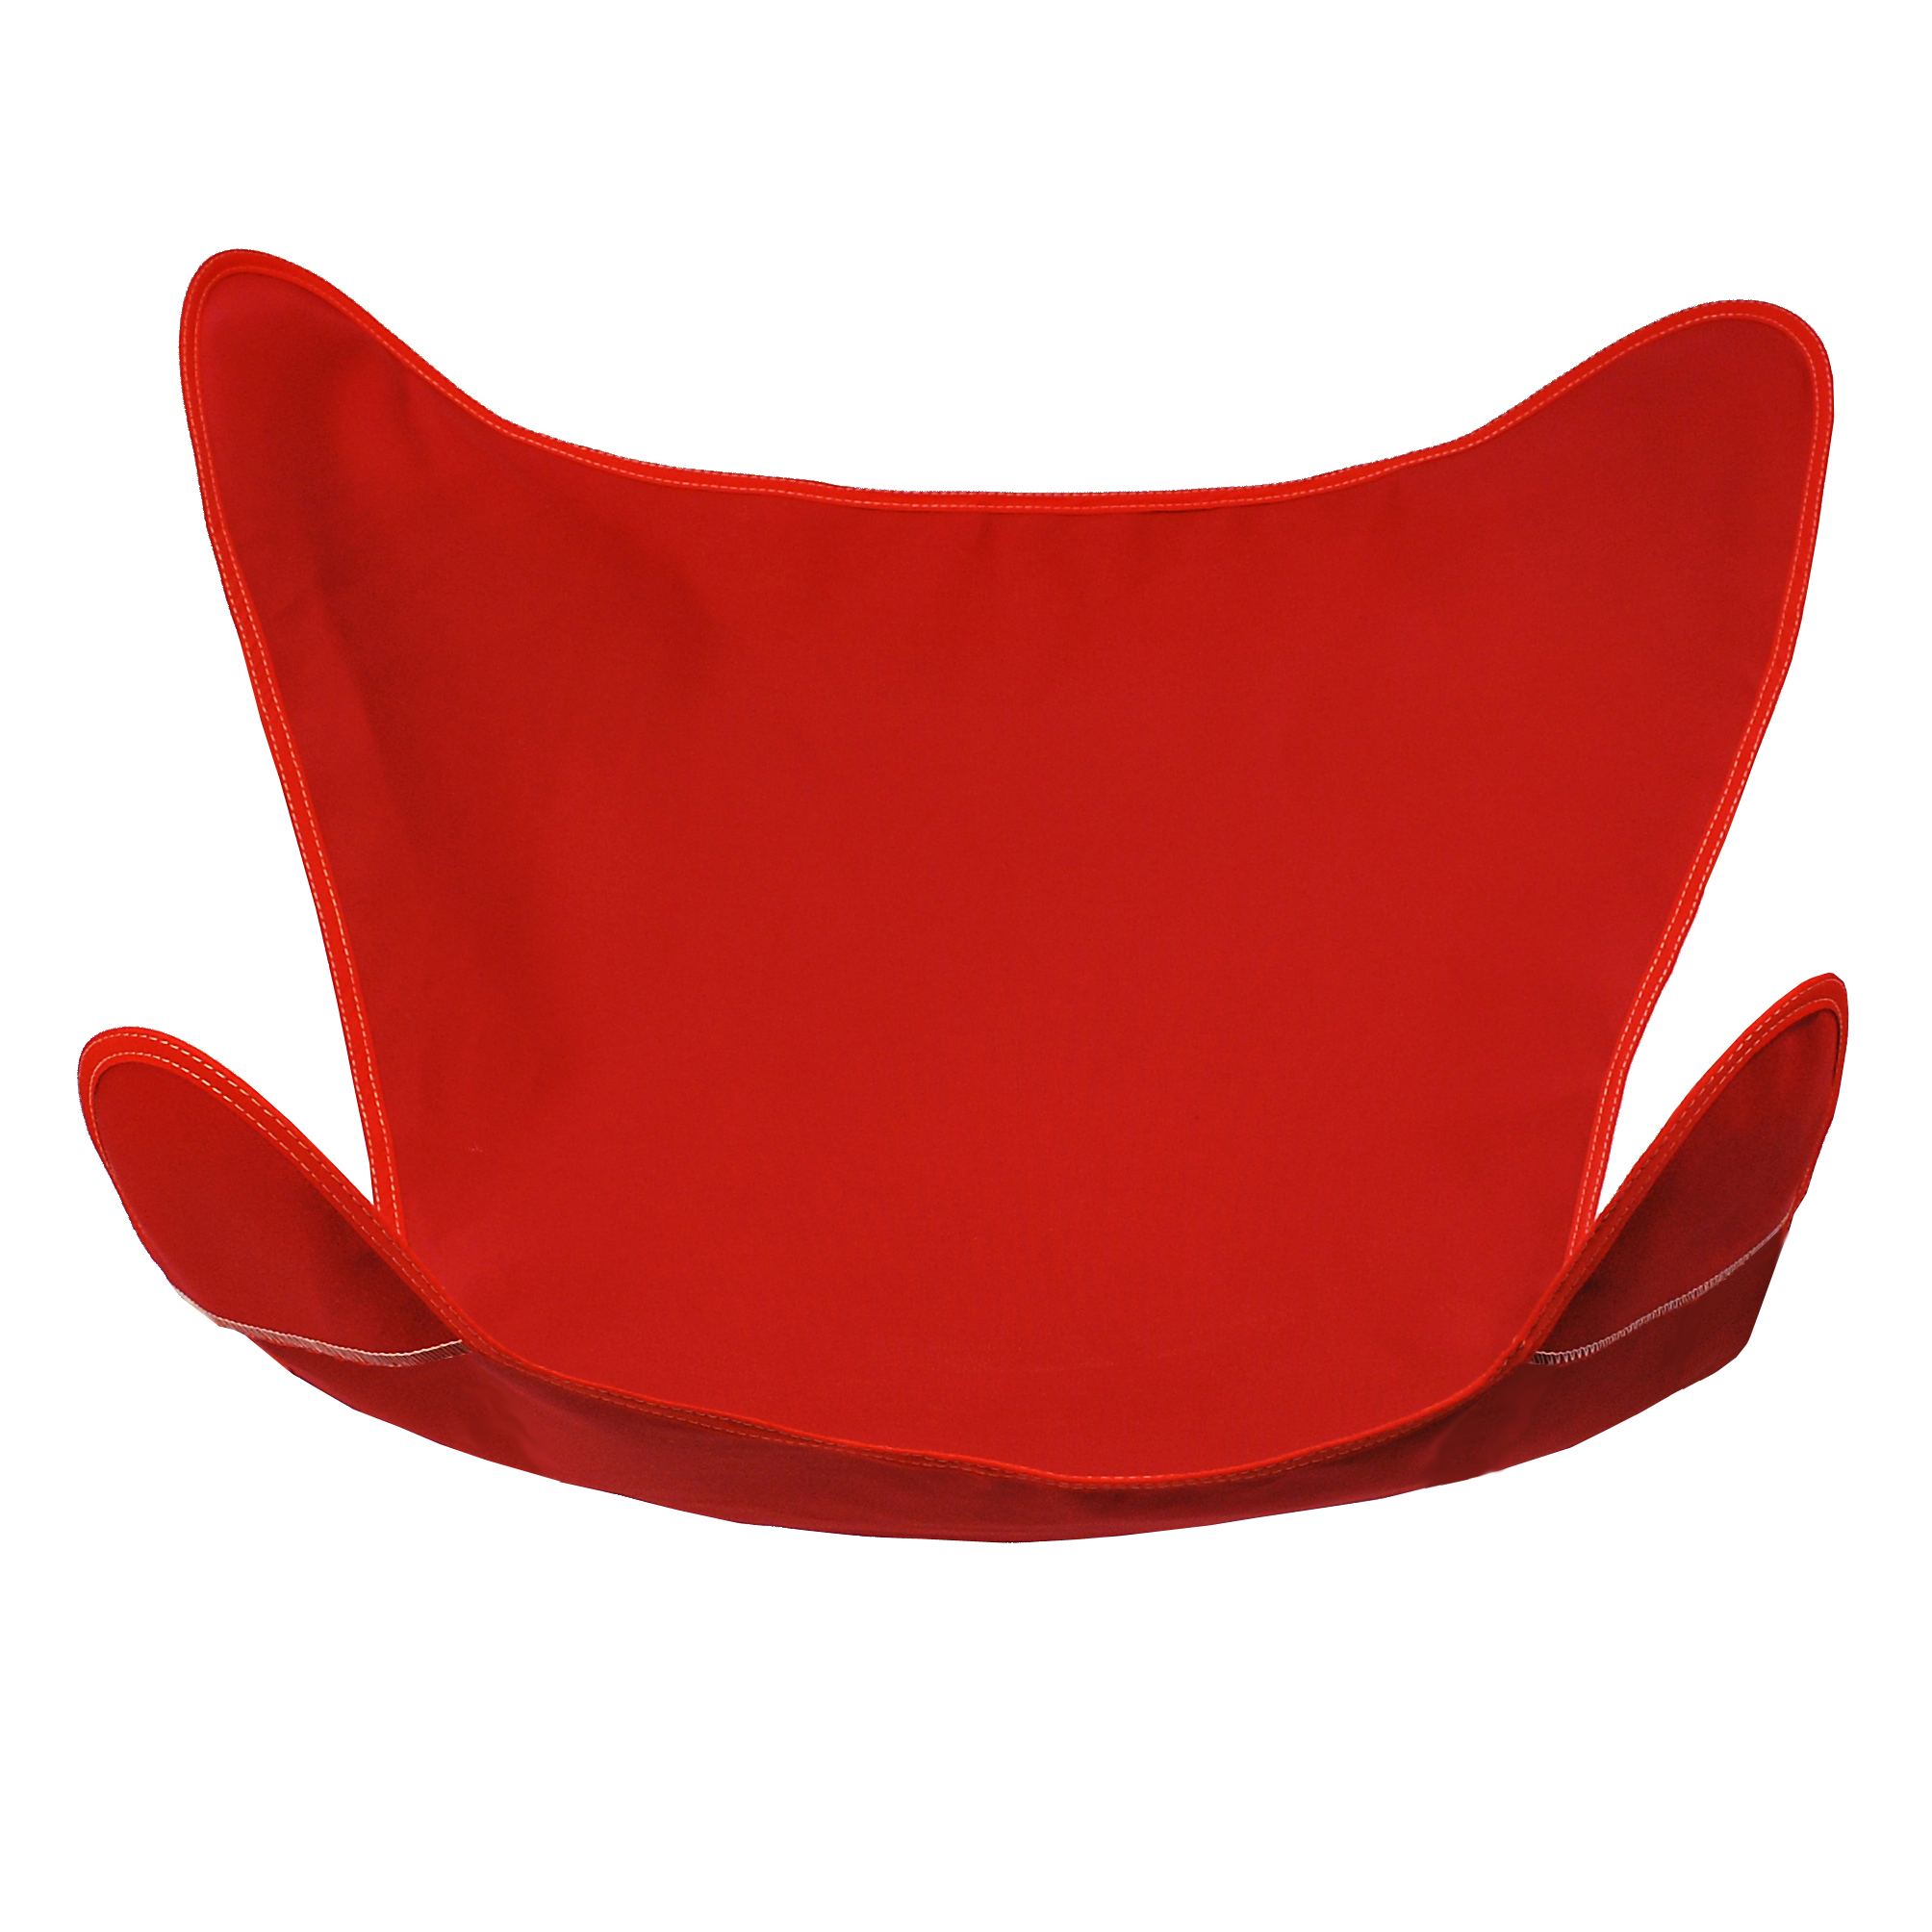 Replacement Cover for Butterfly Chair - Red